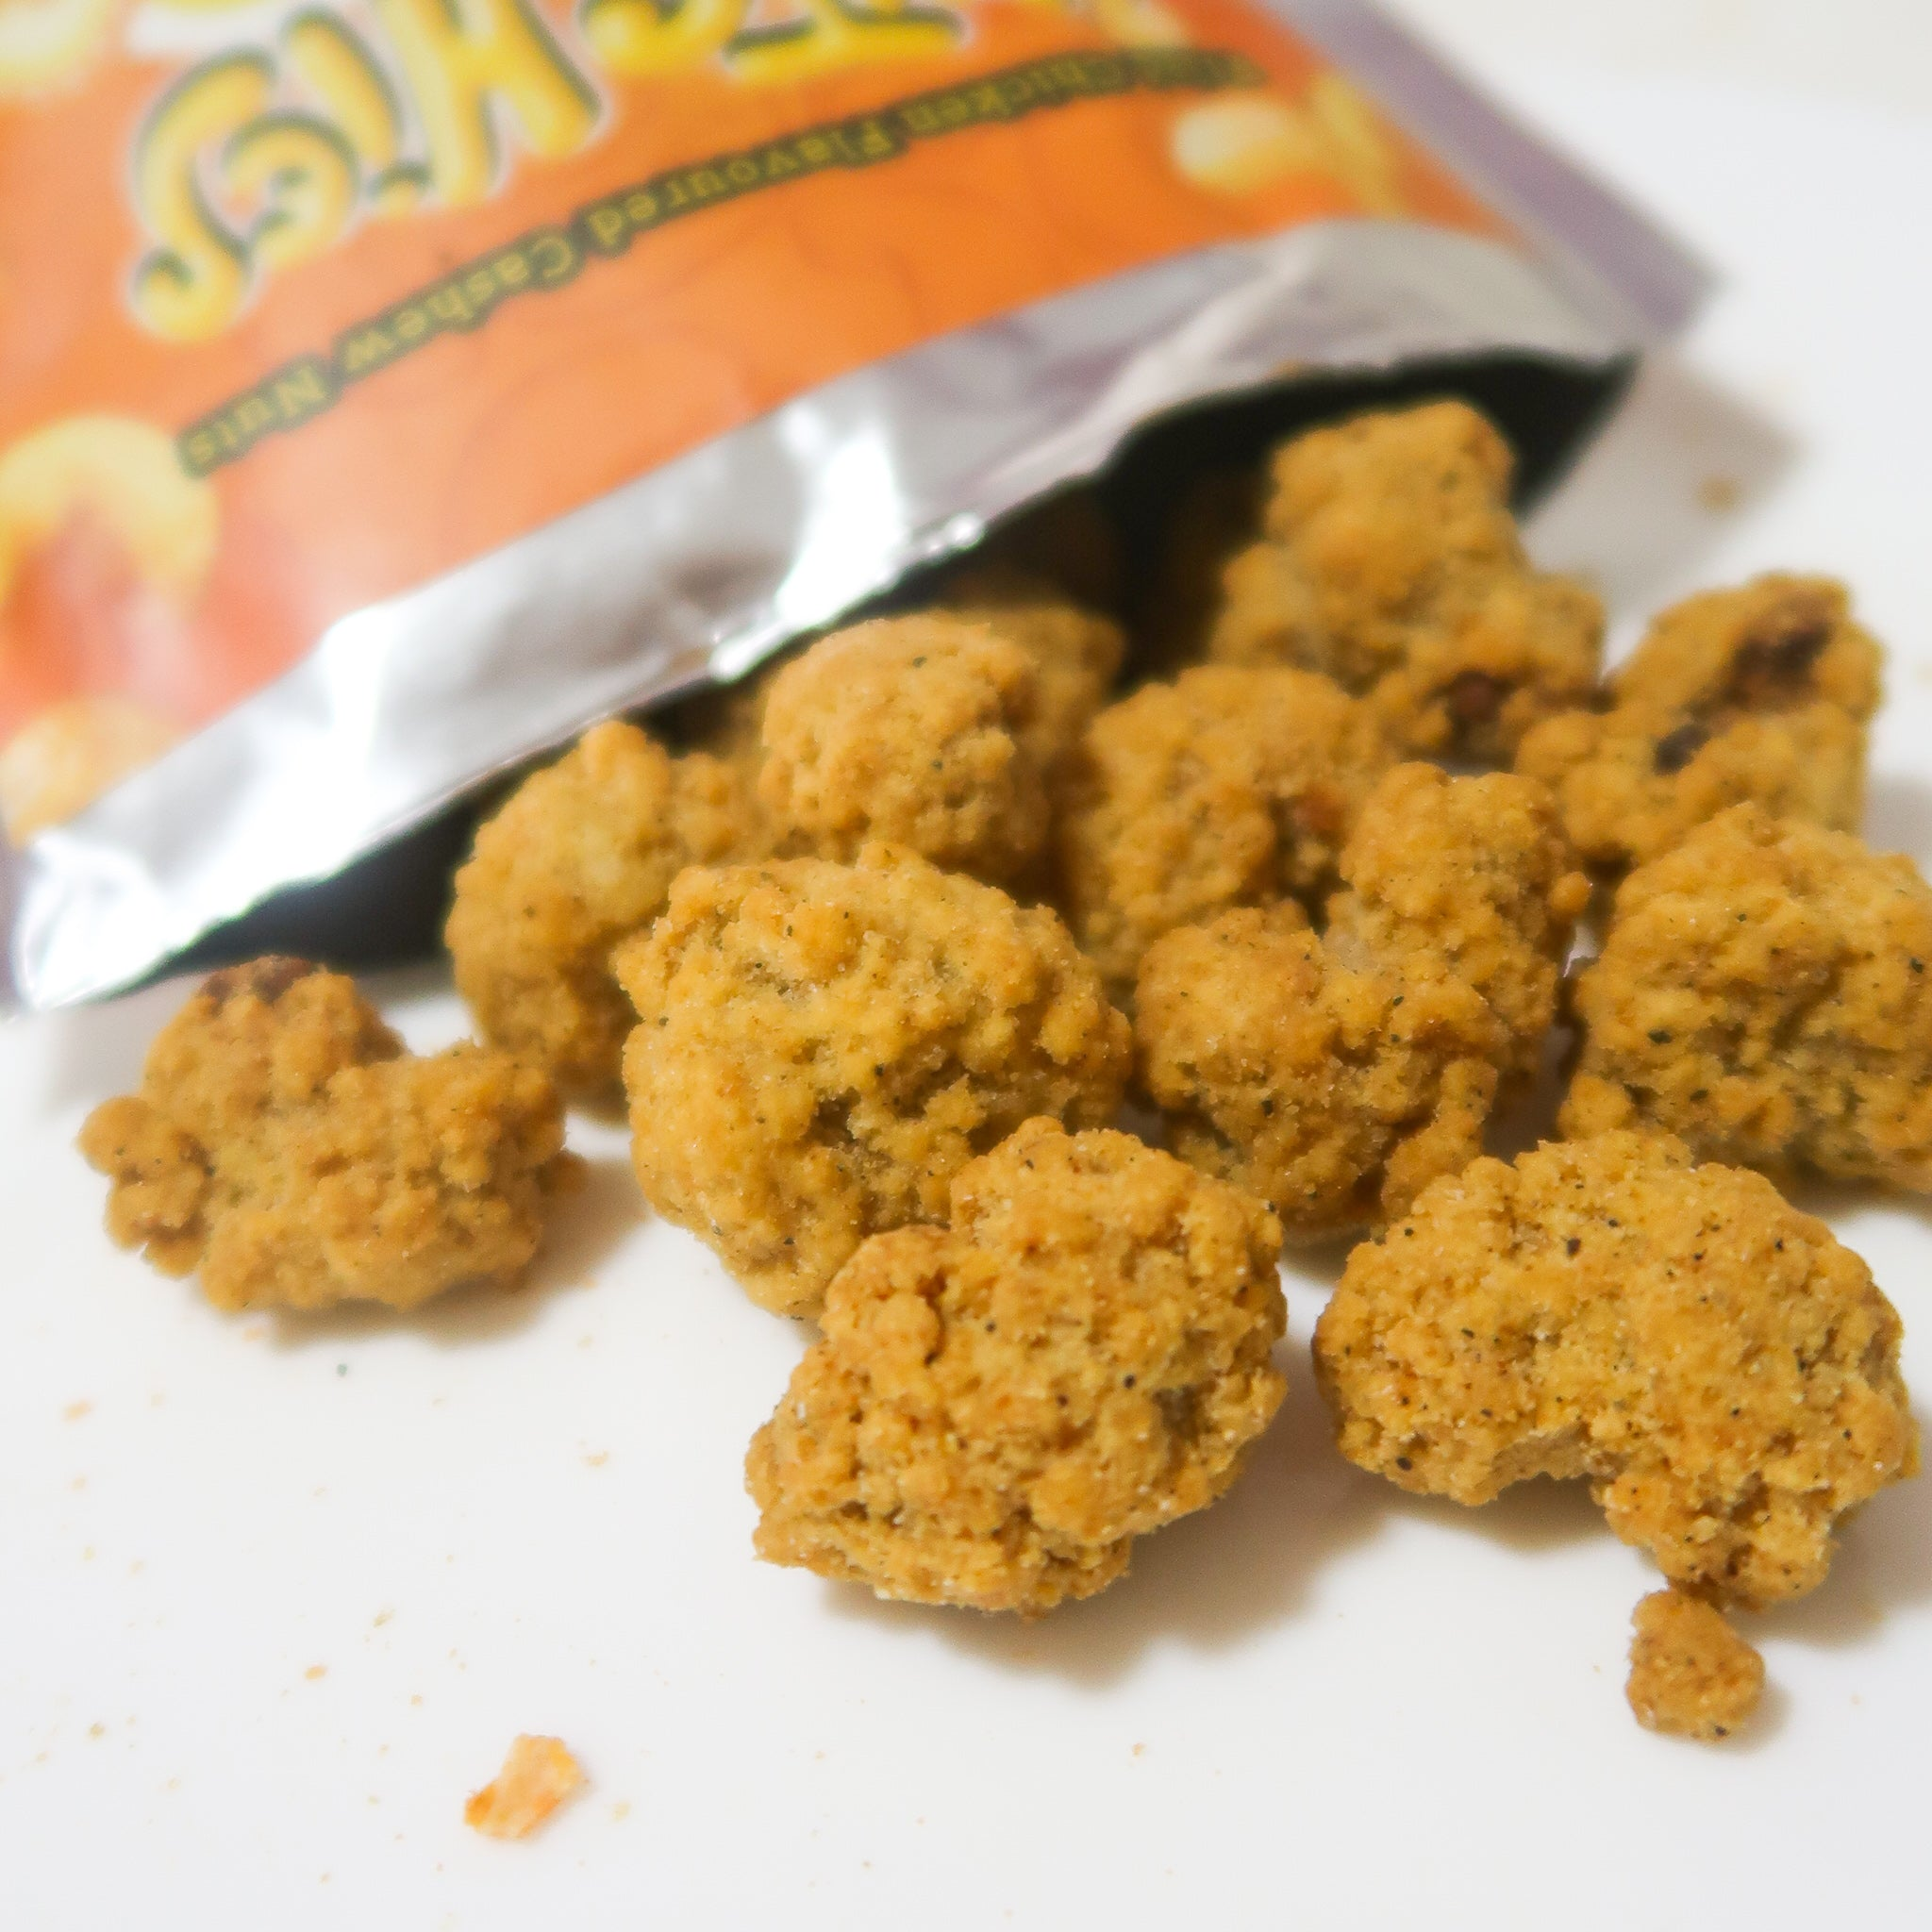 [Selections] Cashew Nuts - Fried Chicken